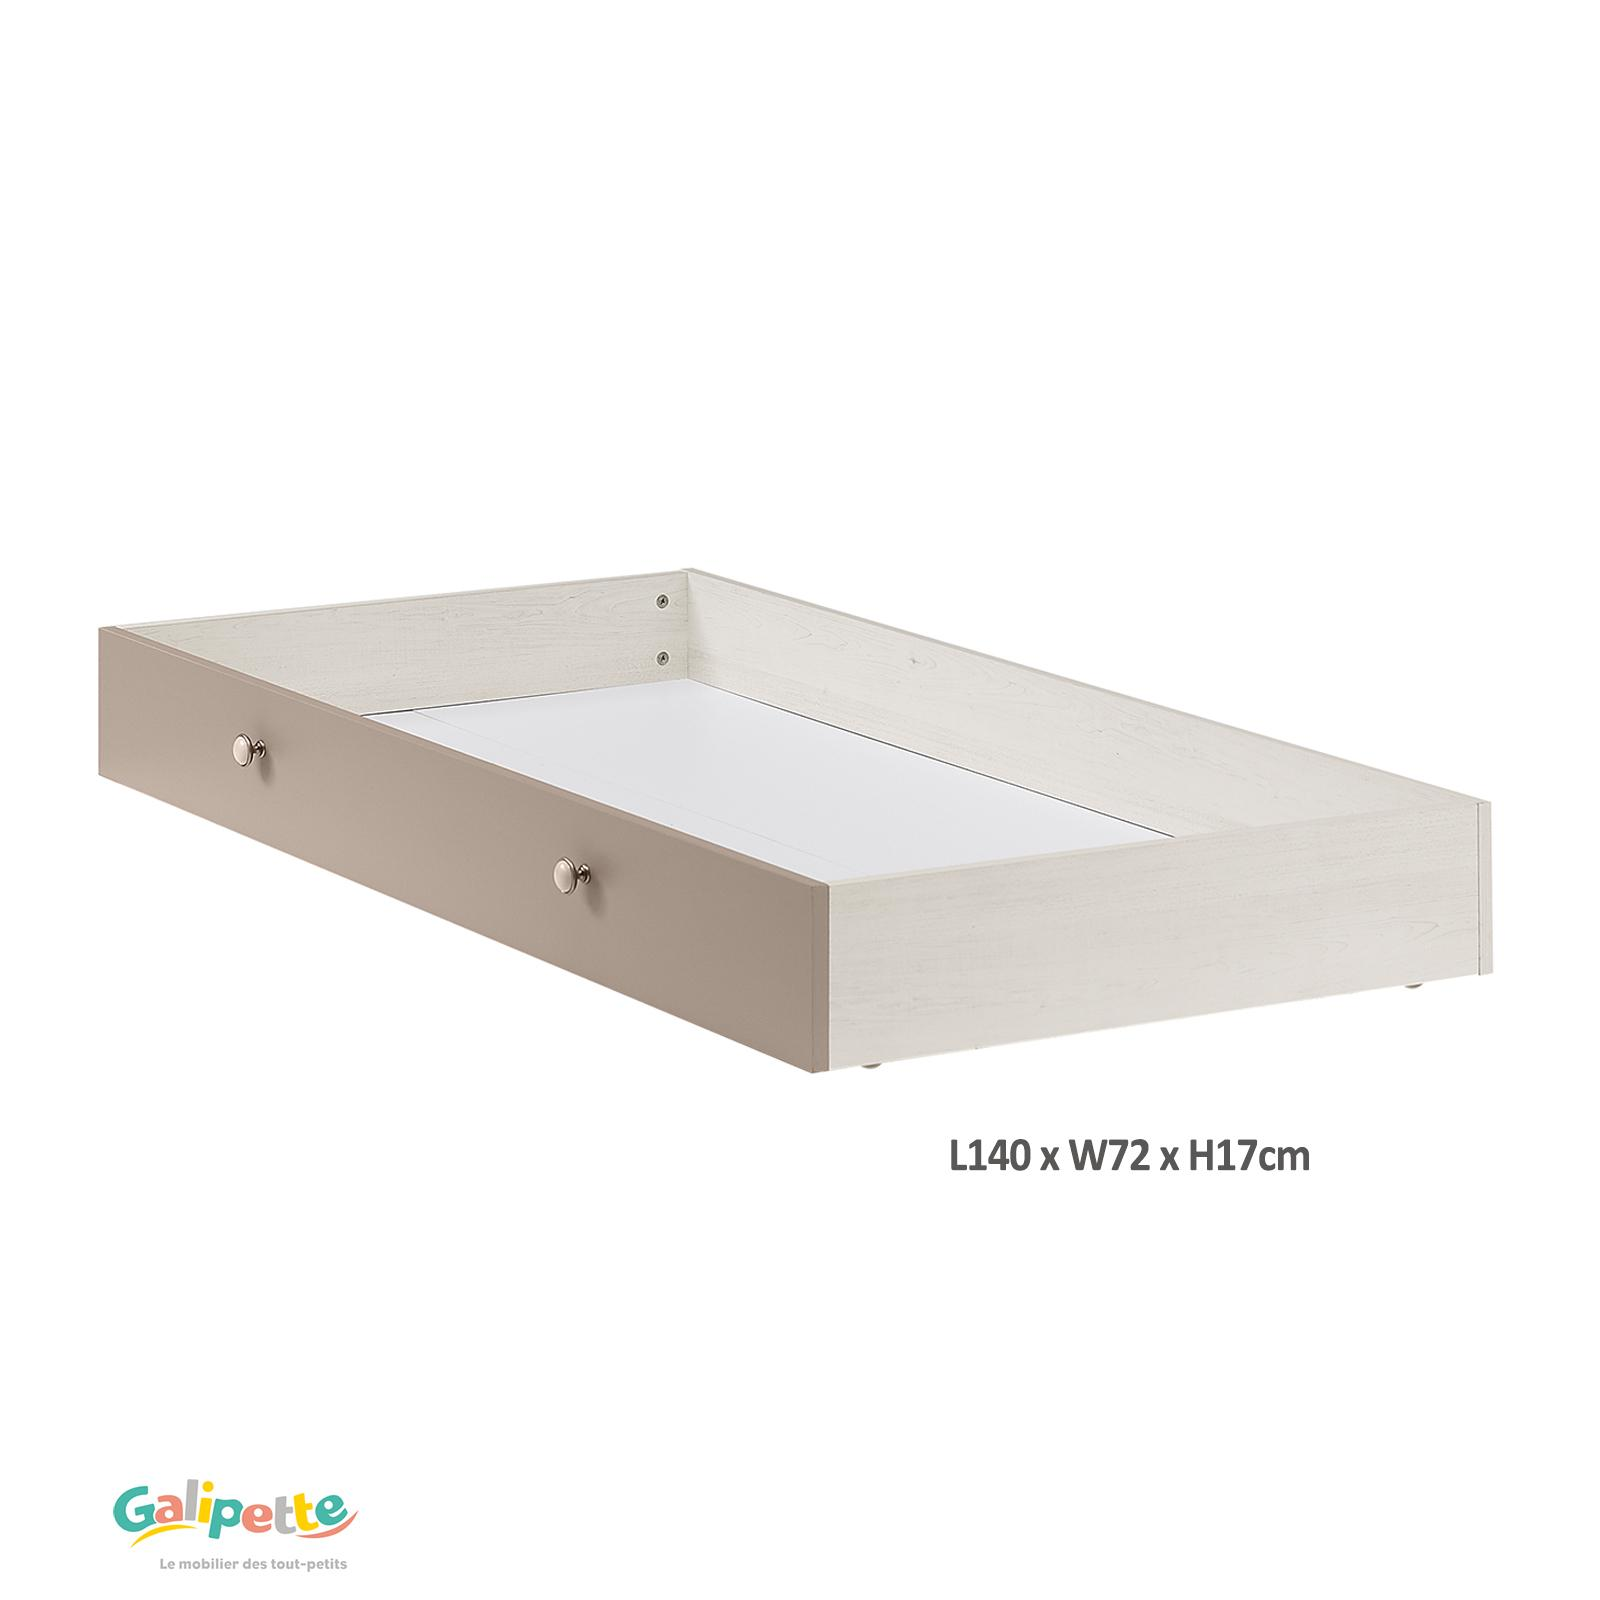 Galipette Drawer - Meline